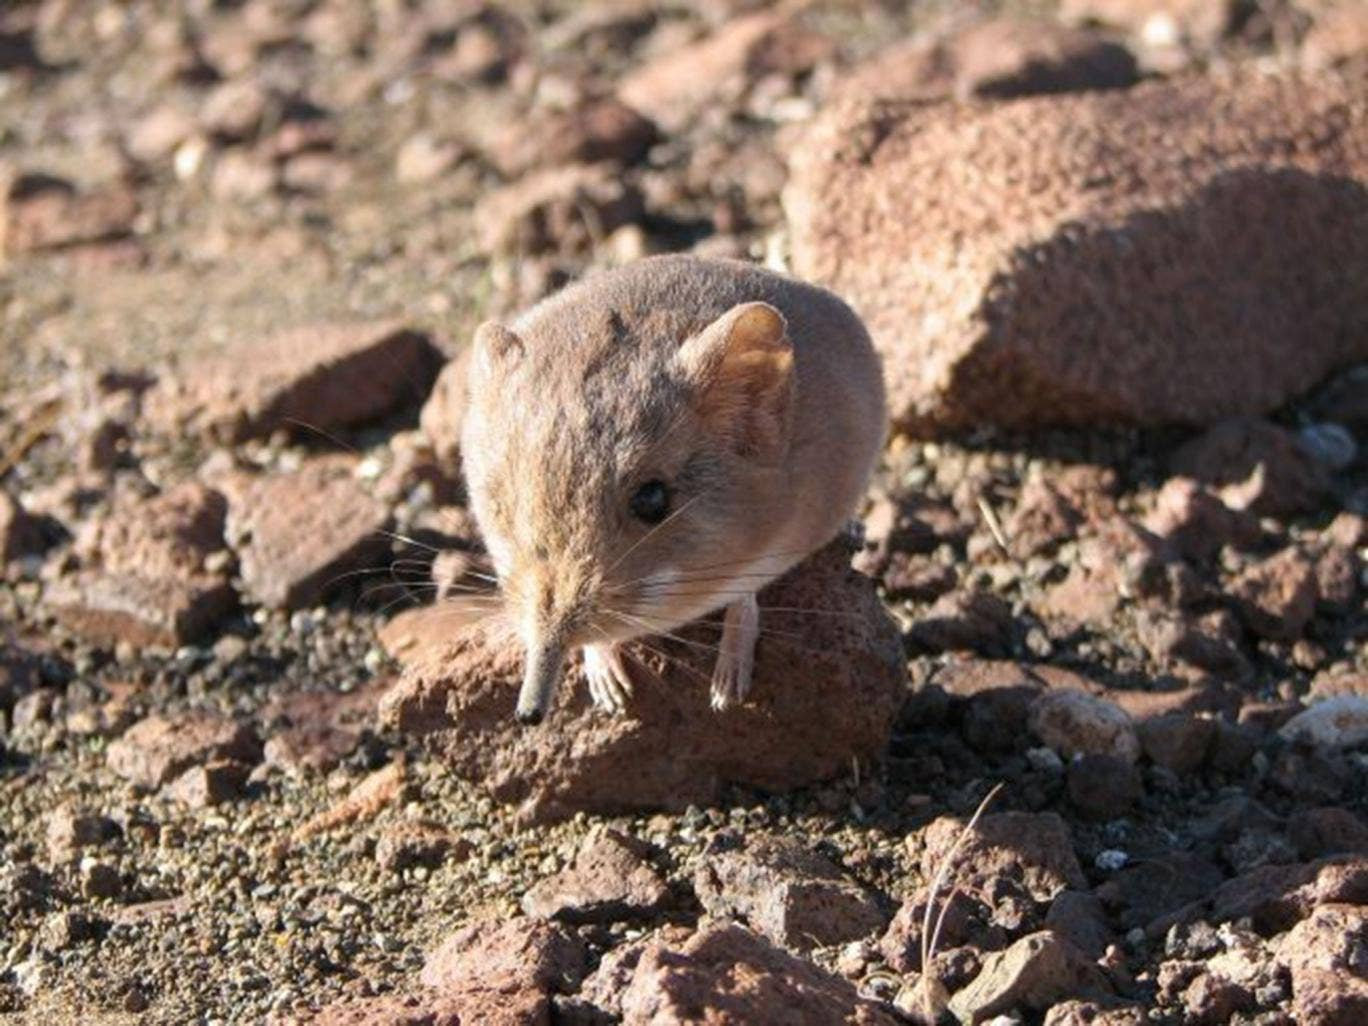 Round-eared elephant shrew, new species of mammal